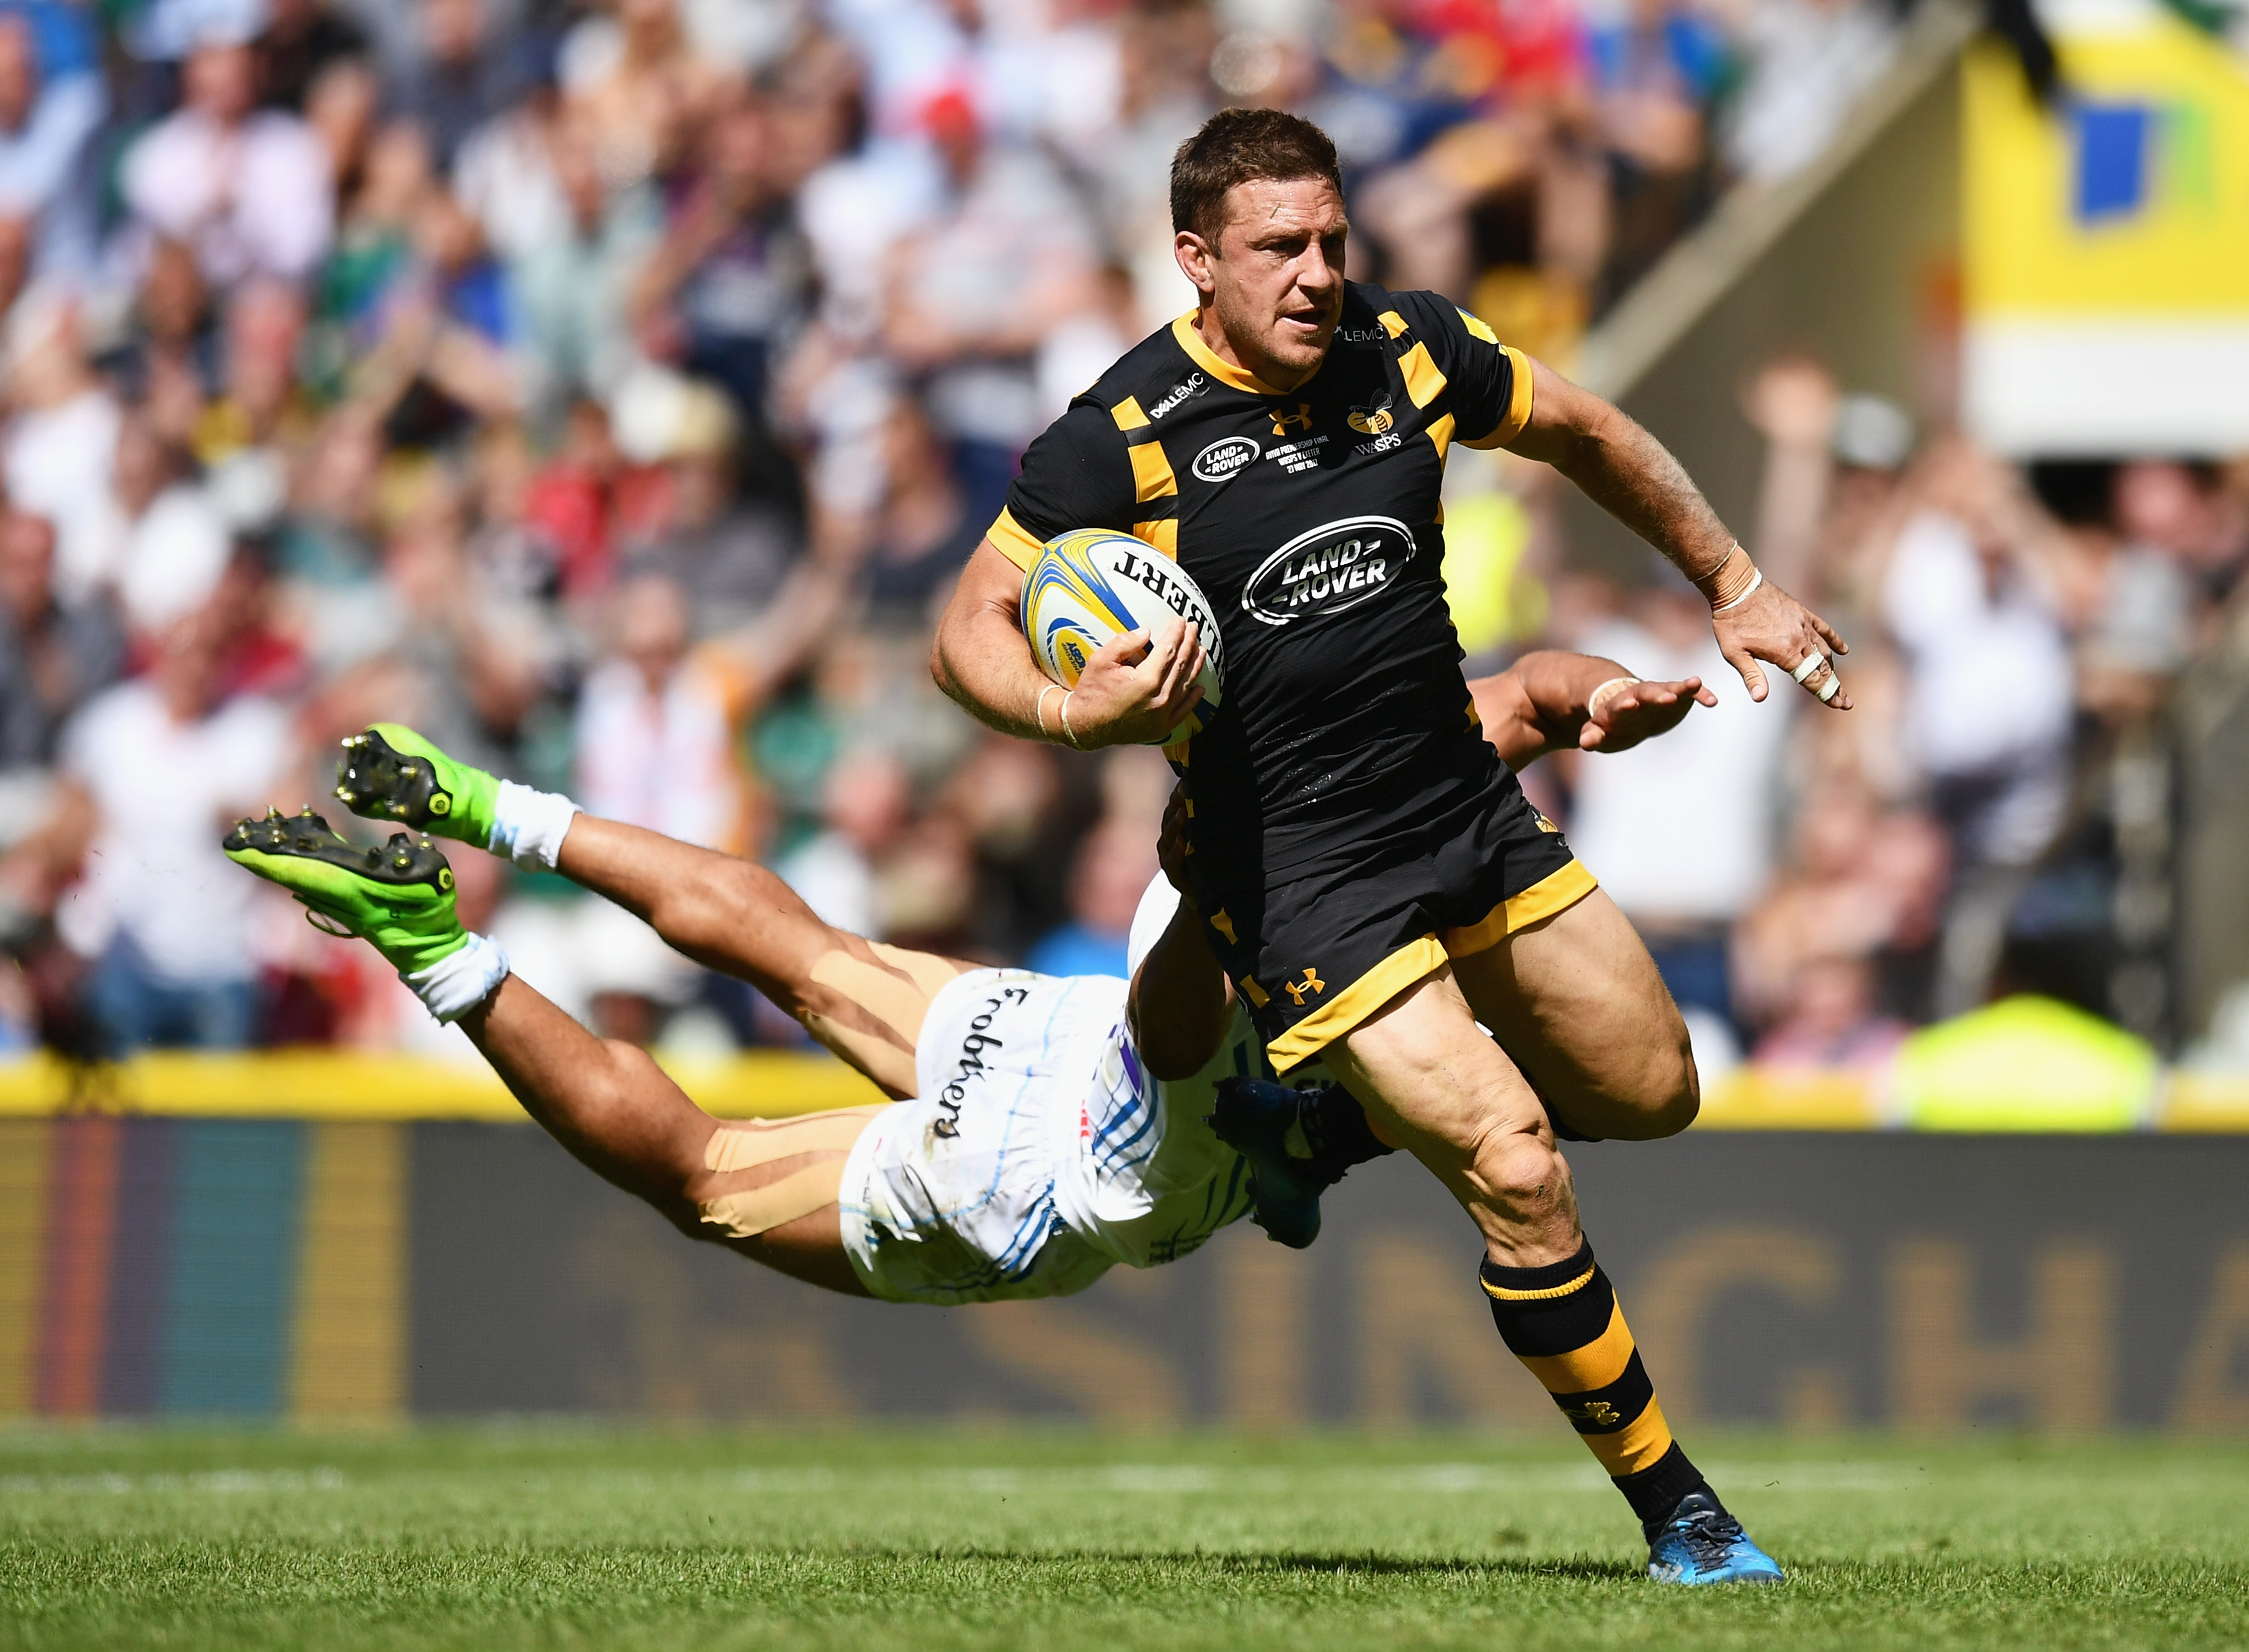 A Statistical Review Of The 2016 17 Aviva Premiership Season Rugby World